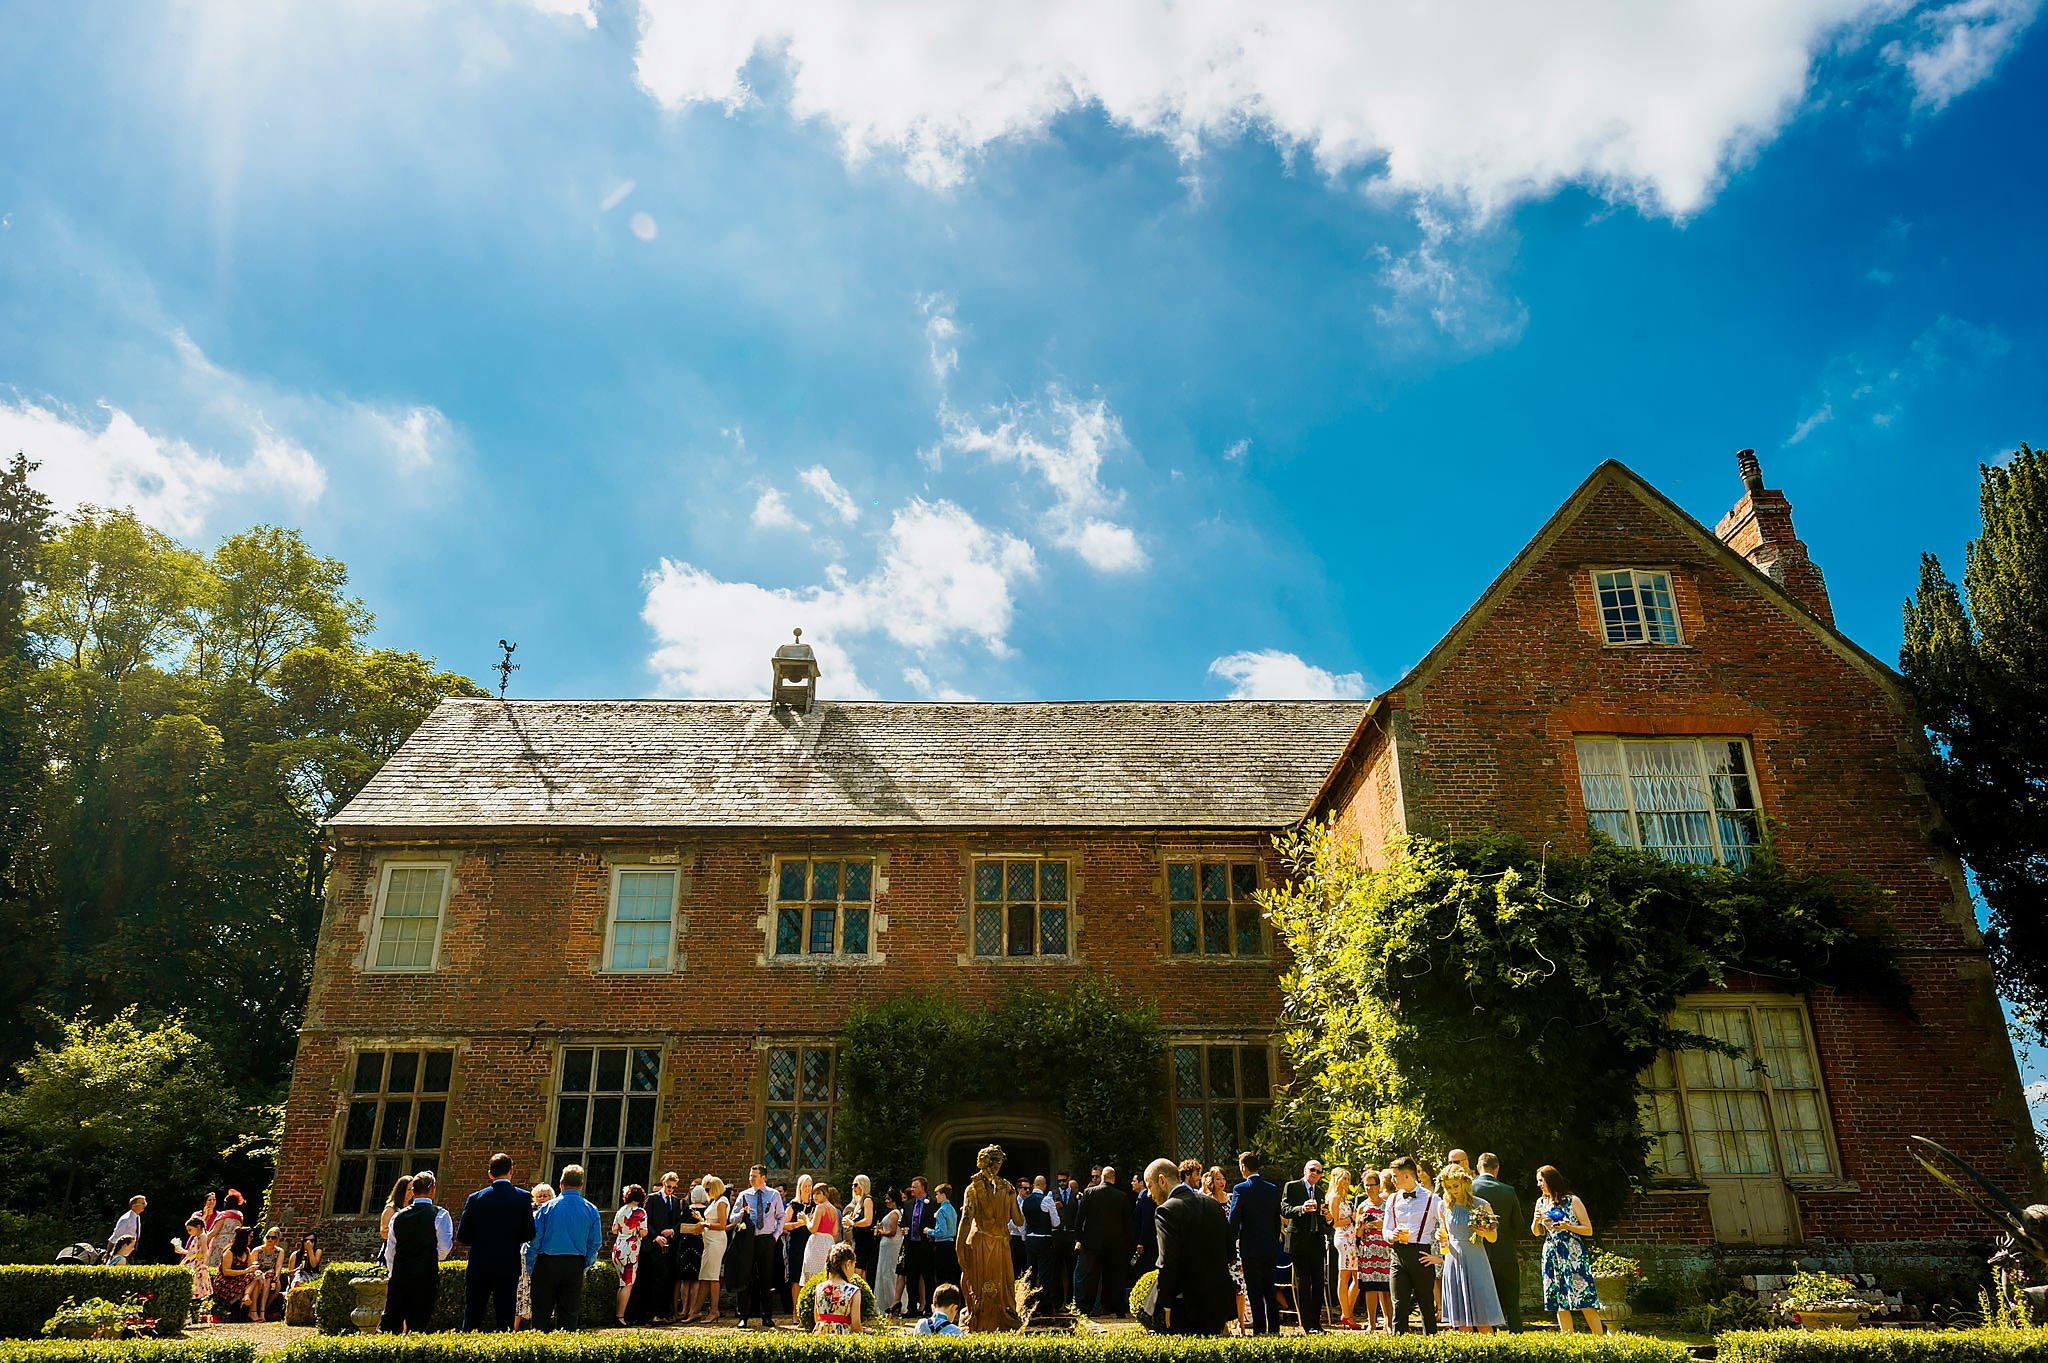 hellens manor wedding 55 - Wedding photography at Hellens Manor in Herefordshire, West Midlands | Shelley + Ian